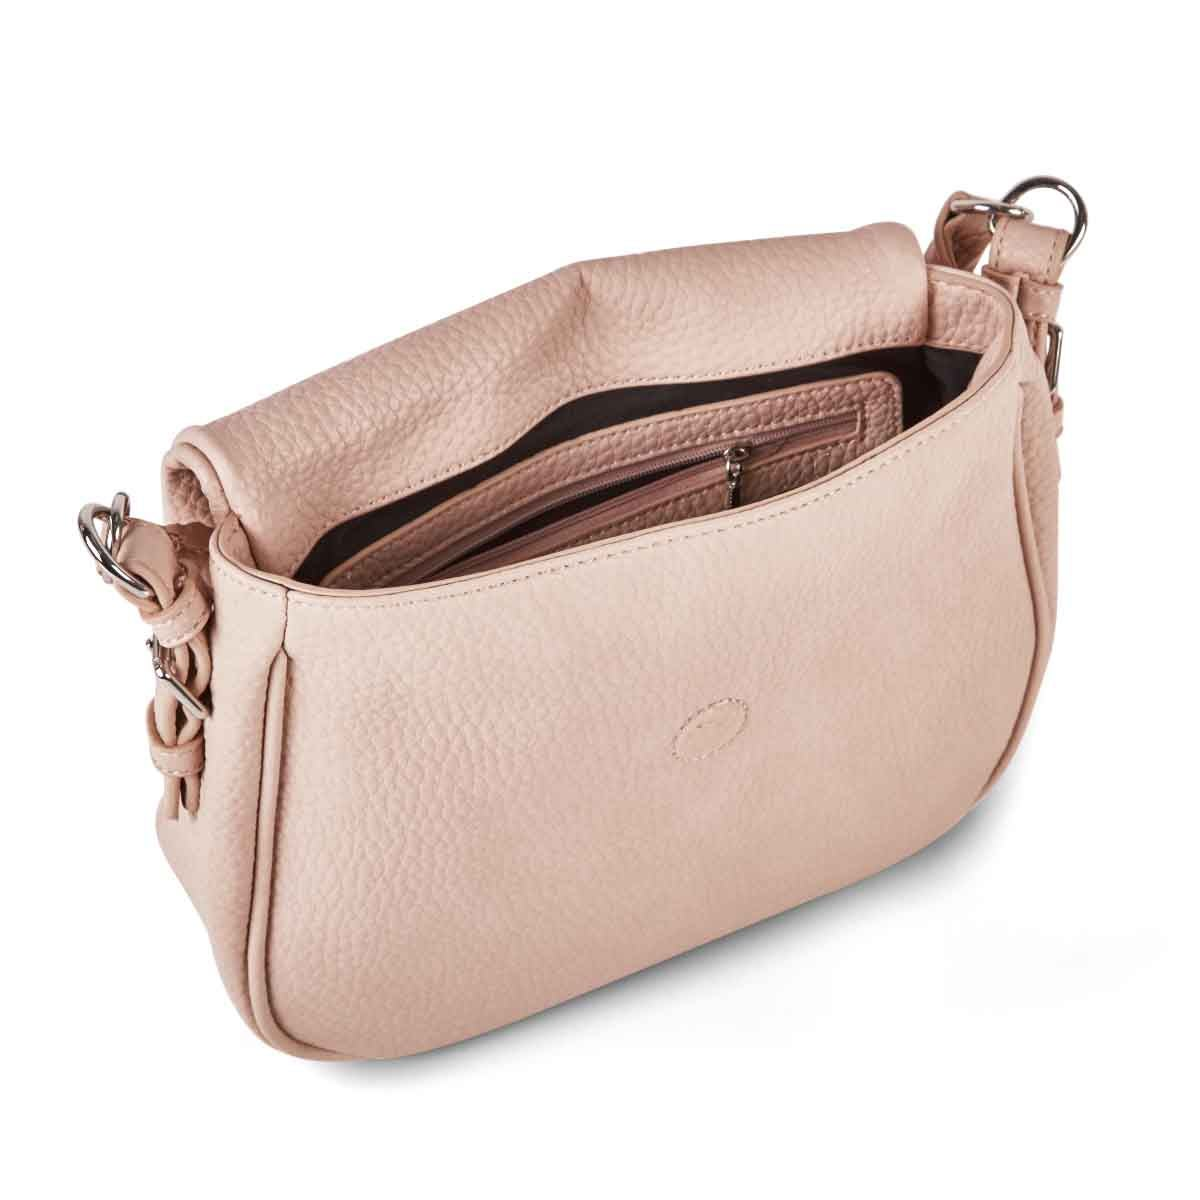 Lds Sydney Handle blsh crossbody bag